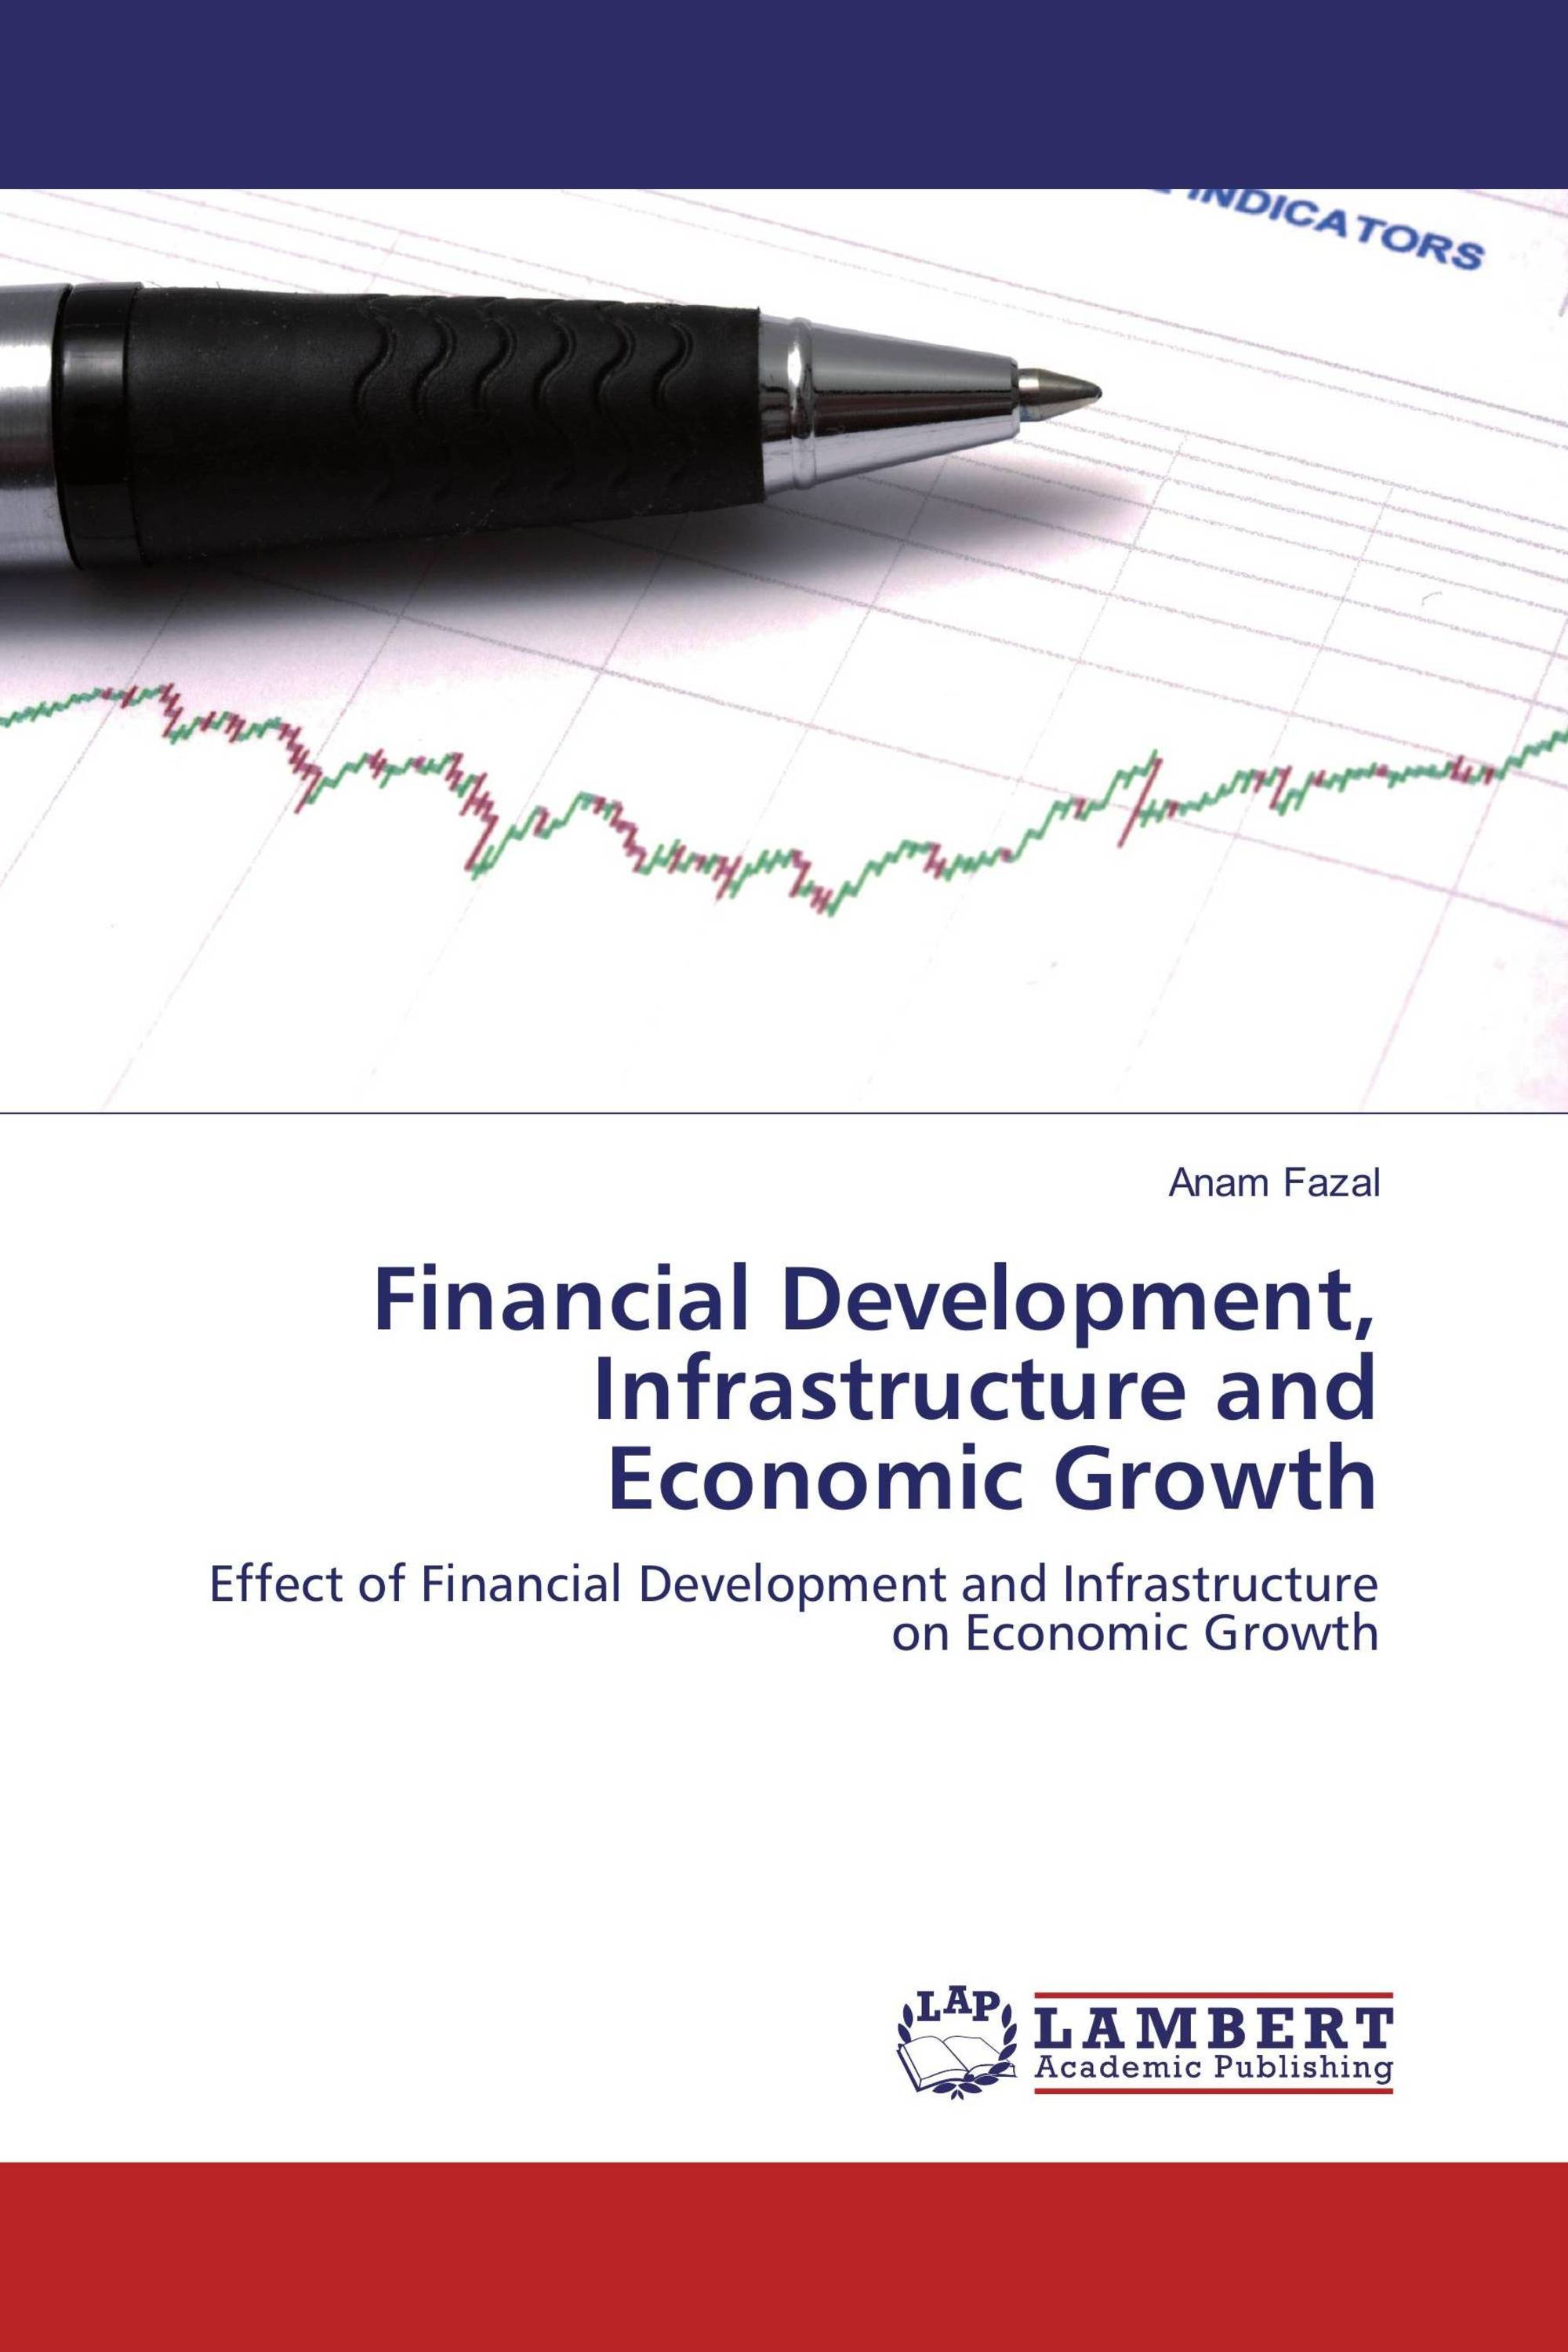 financial development economic growth essay Nber working paper series financial development and output growth in developing asia and latin america: a comparative sectoral analysis joshua aizenman.